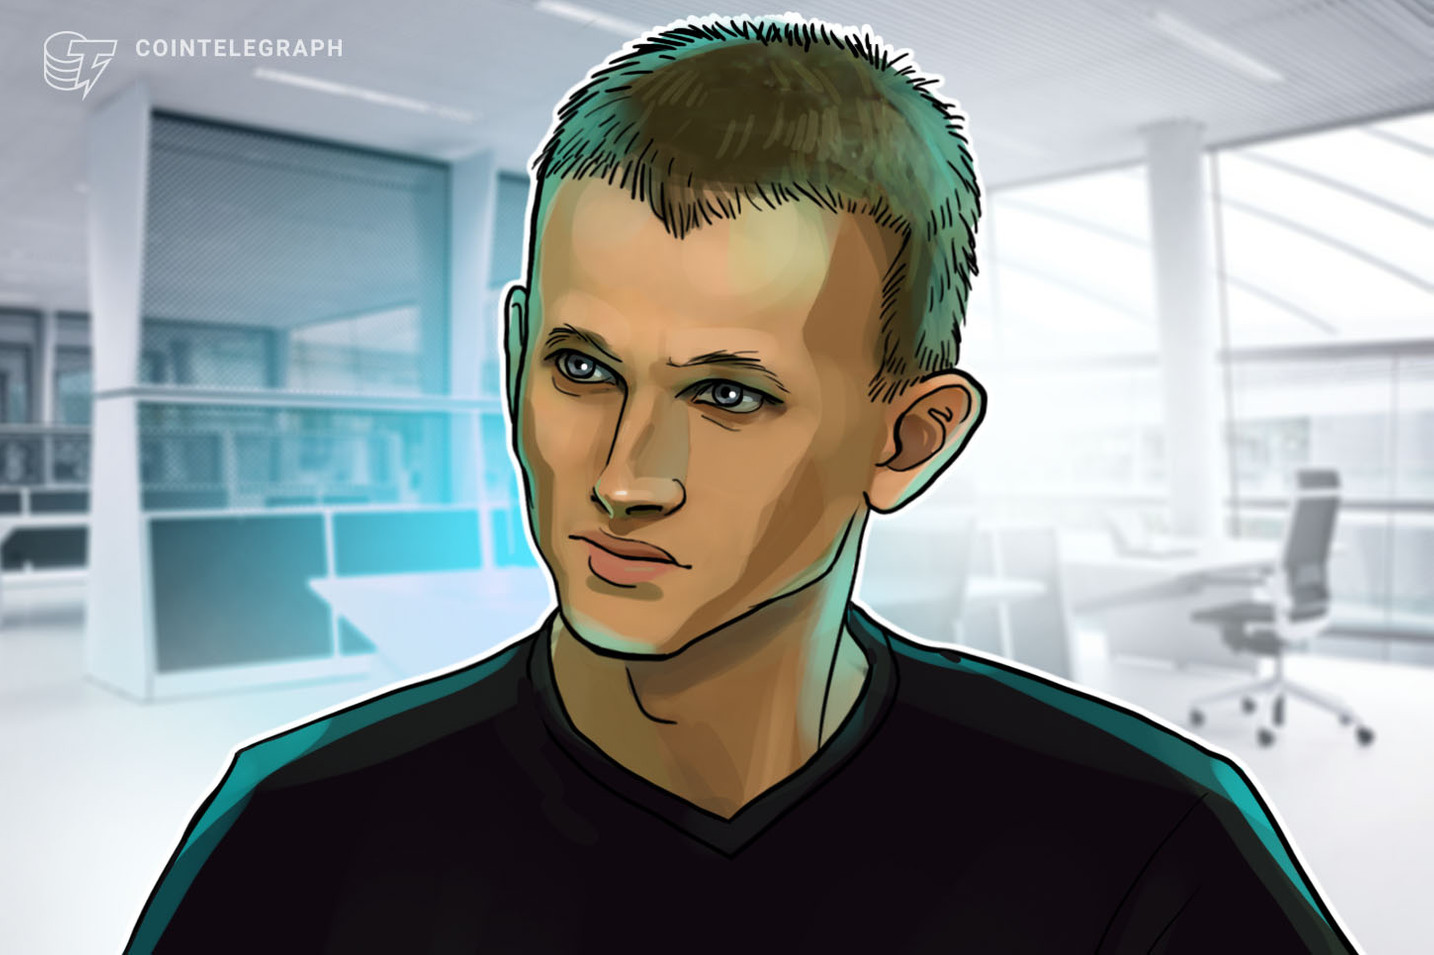 As Ether price breaks all-time high Buterin's ETH holdings up 8x in a year